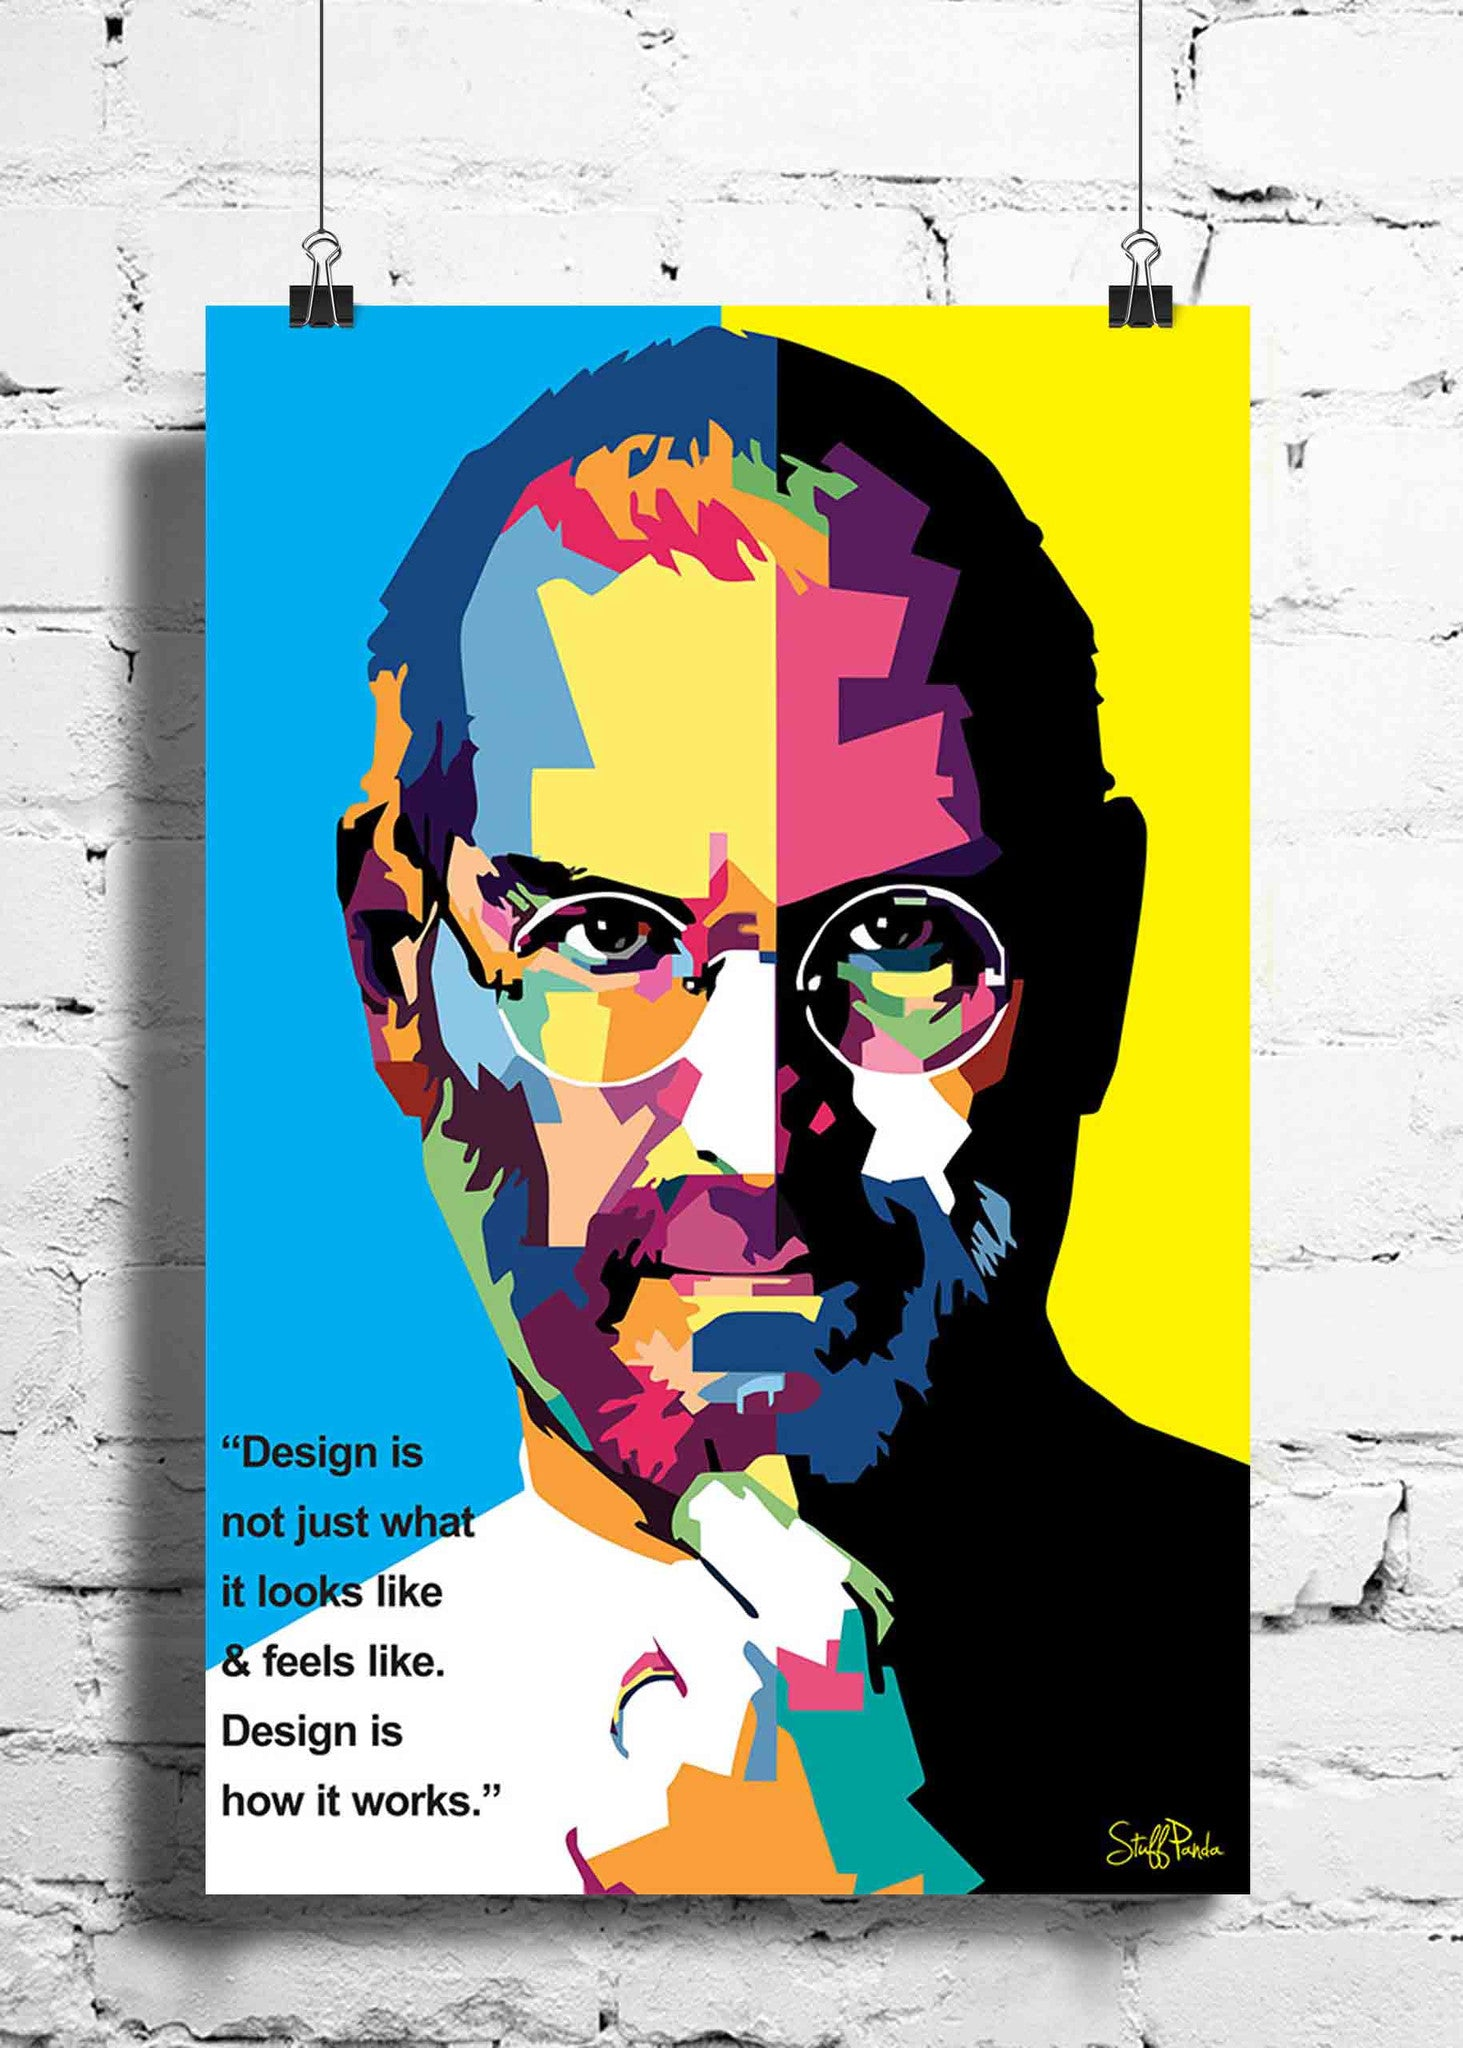 Cool Funky Apple Steve jobs Quote Pixels wall posters, art prints ...